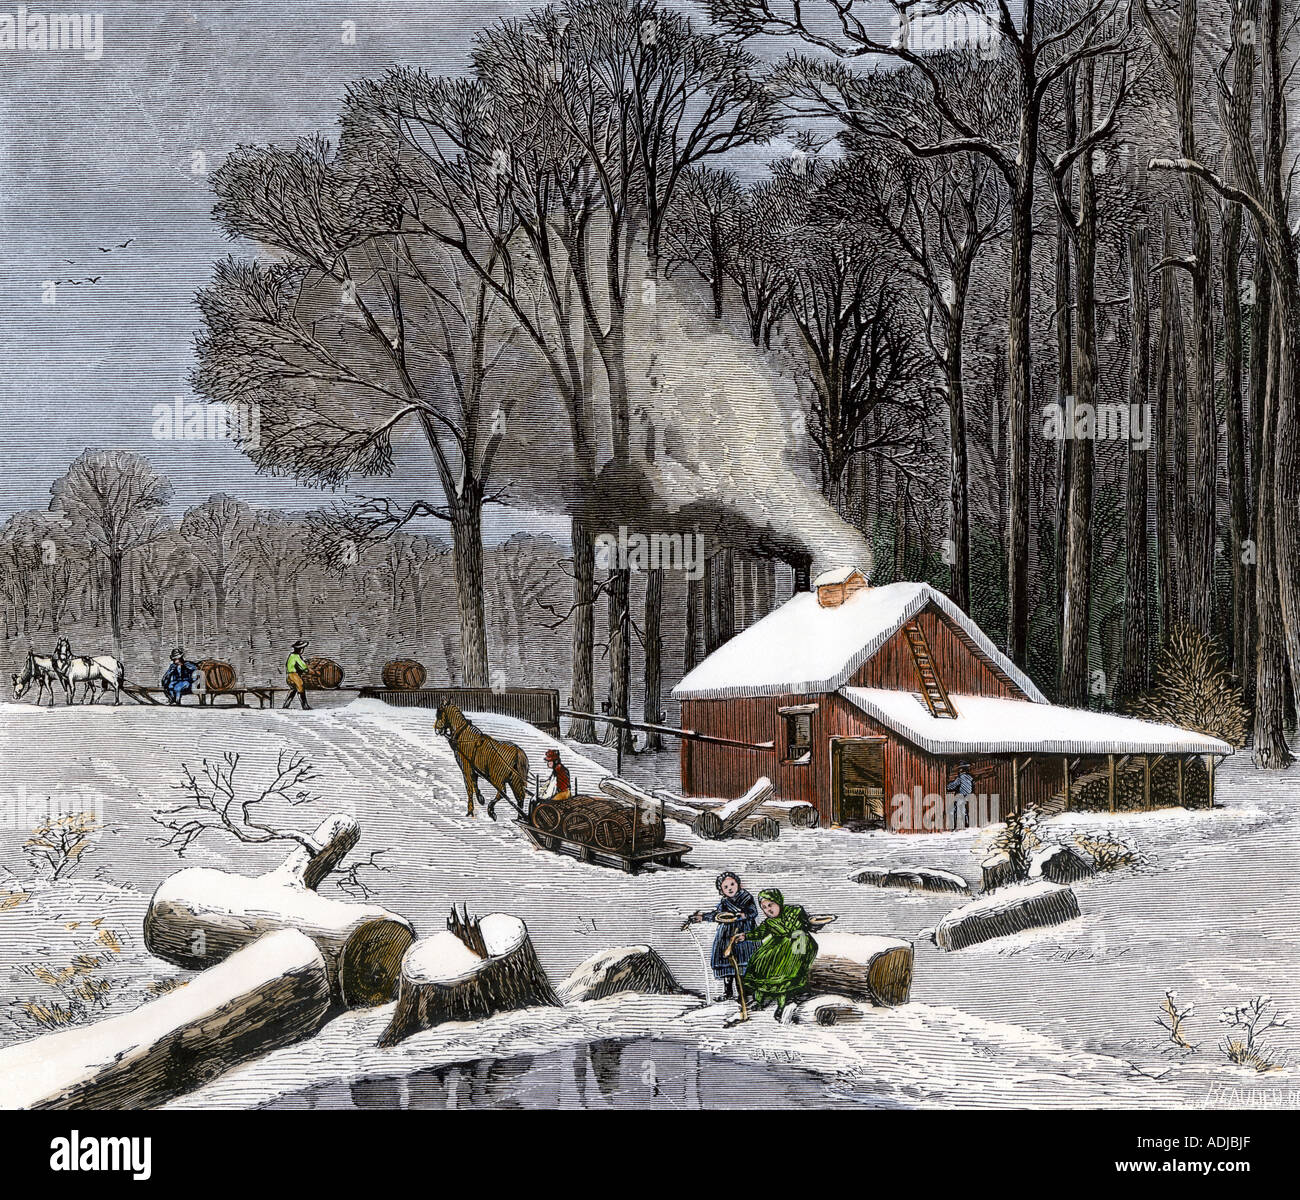 Wonderful image of Horsedrawn Sleds Hauling Sap In A Maple Sugar Camp 1800s Stock Photo  with #5E4B40 color and 1300x1199 pixels